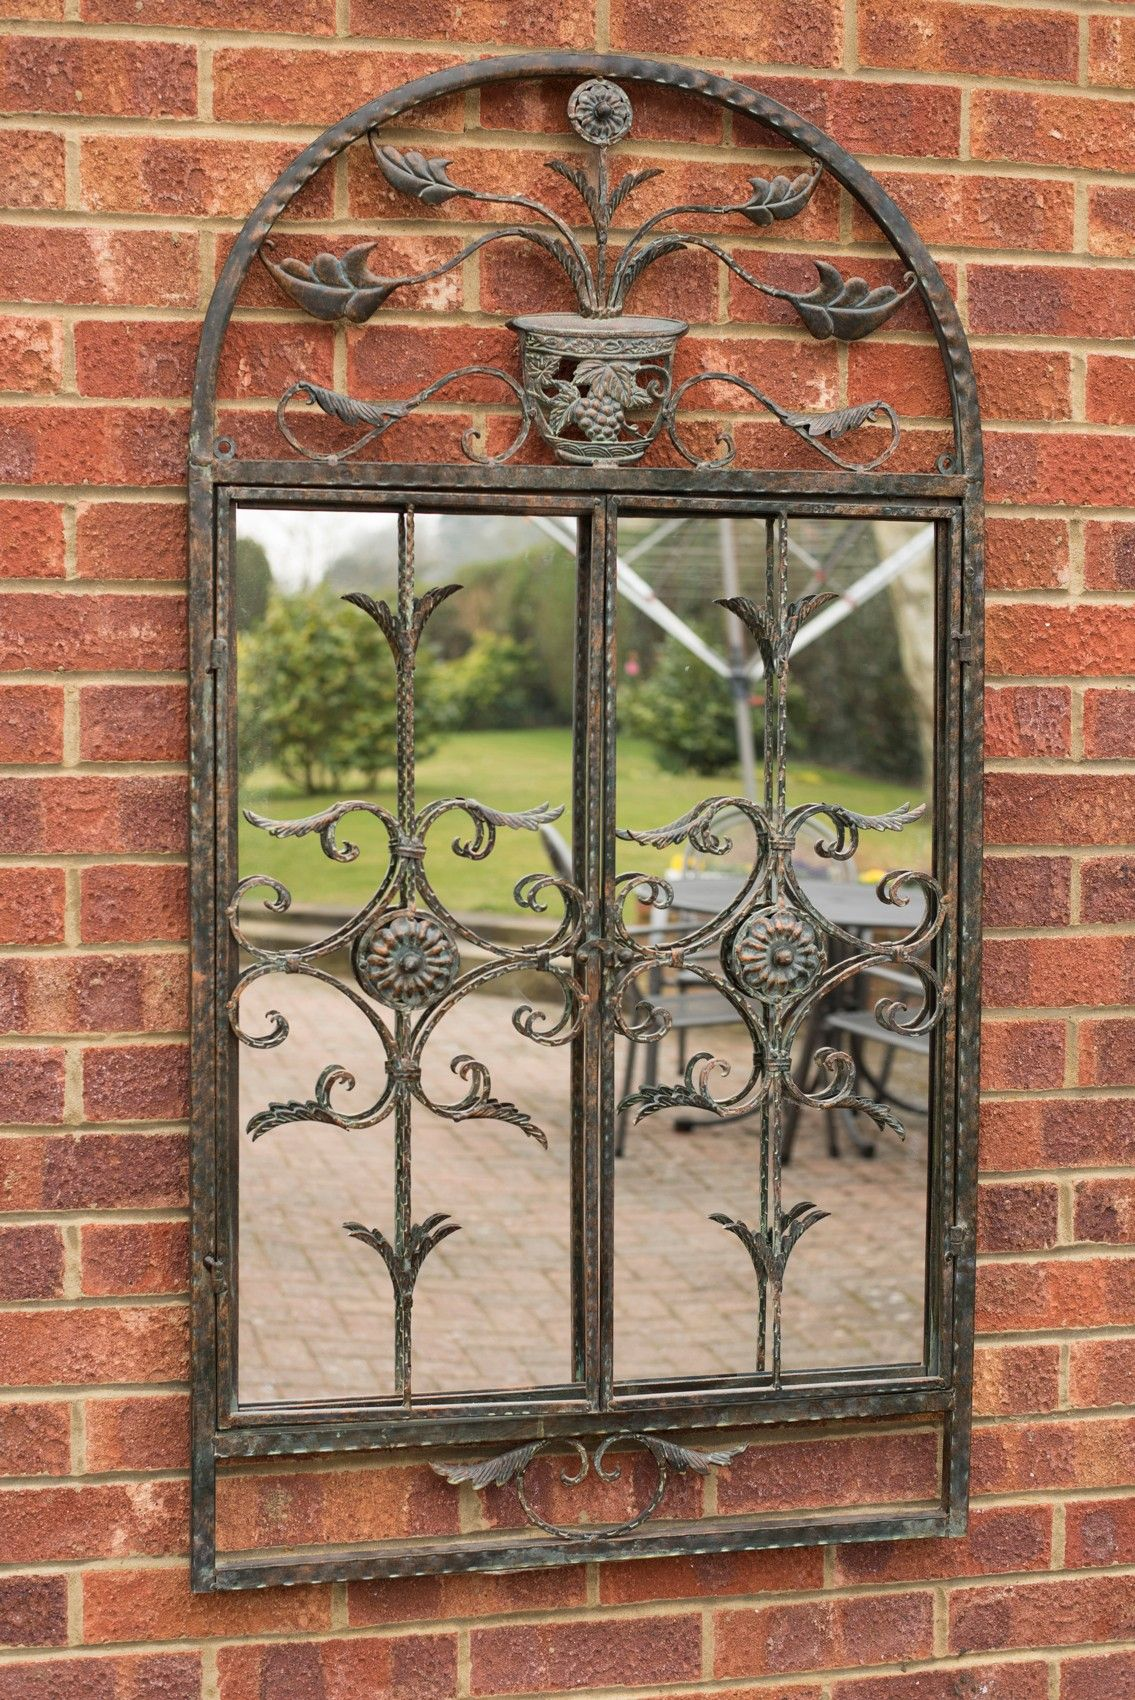 Charmant Large Rustic Scroll Garden Outdoor Wall Mirror 4Ft3 X 2Ft4, 130cm X 70cm